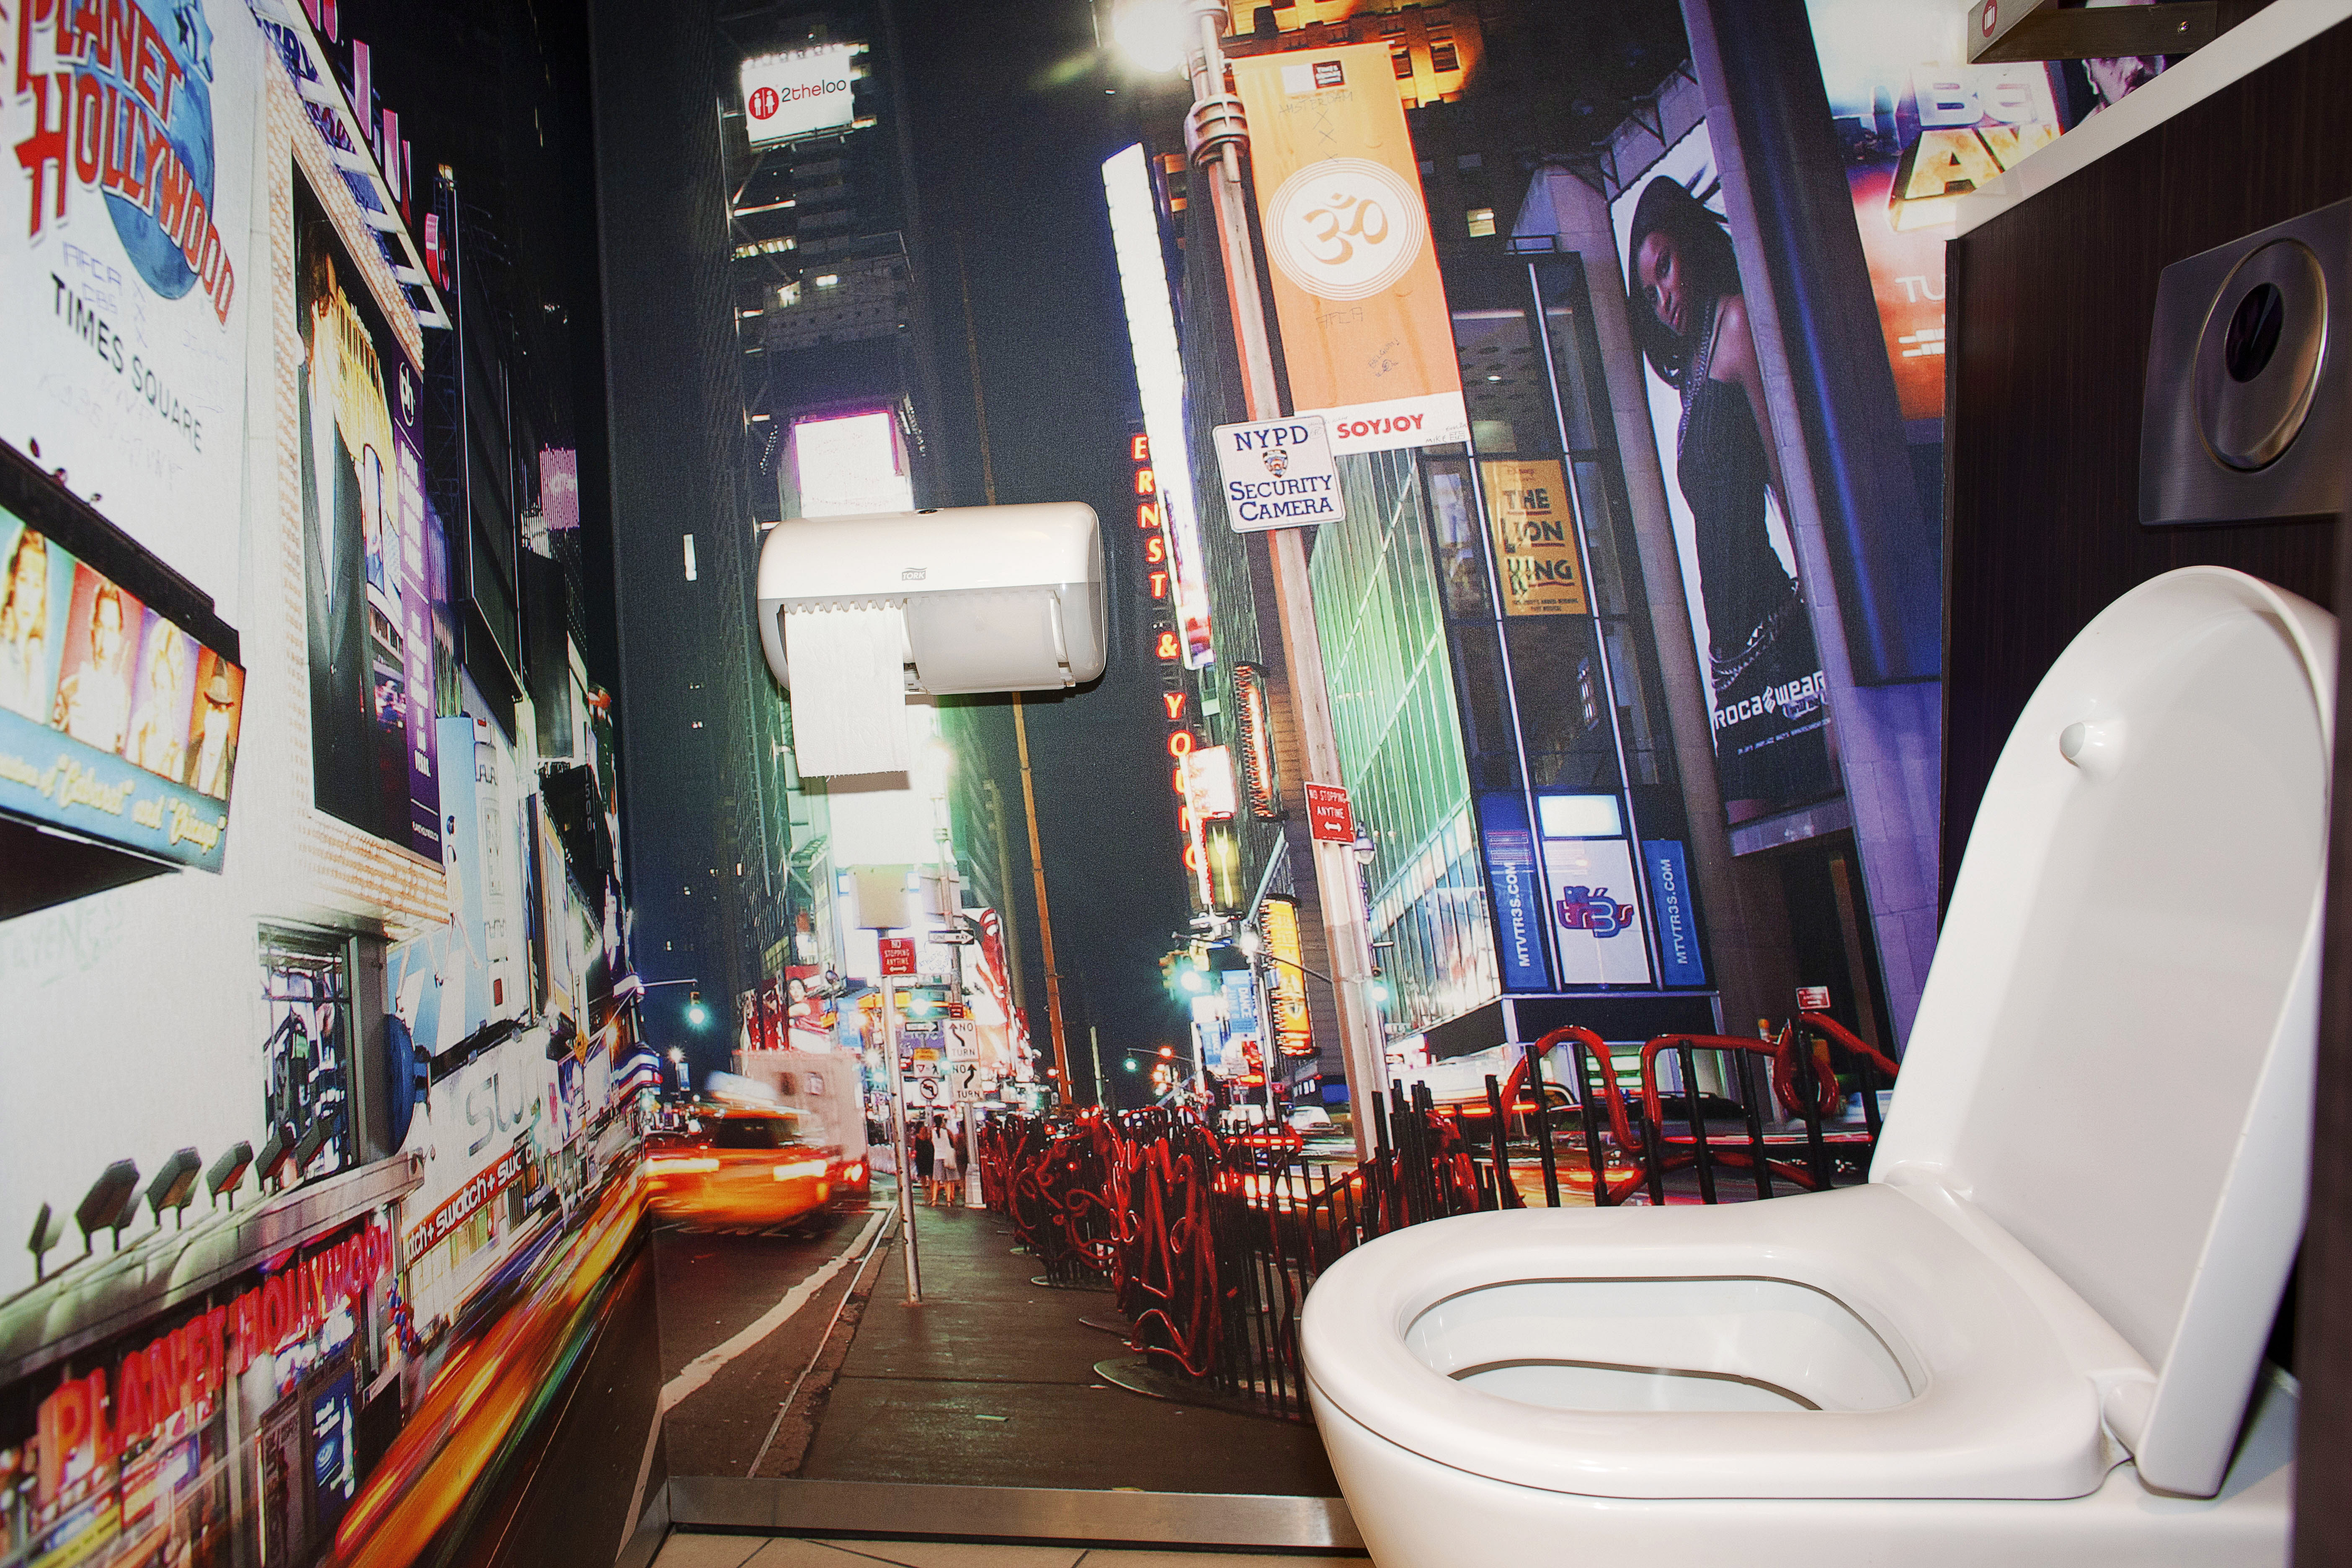 A loo experience you will never forget